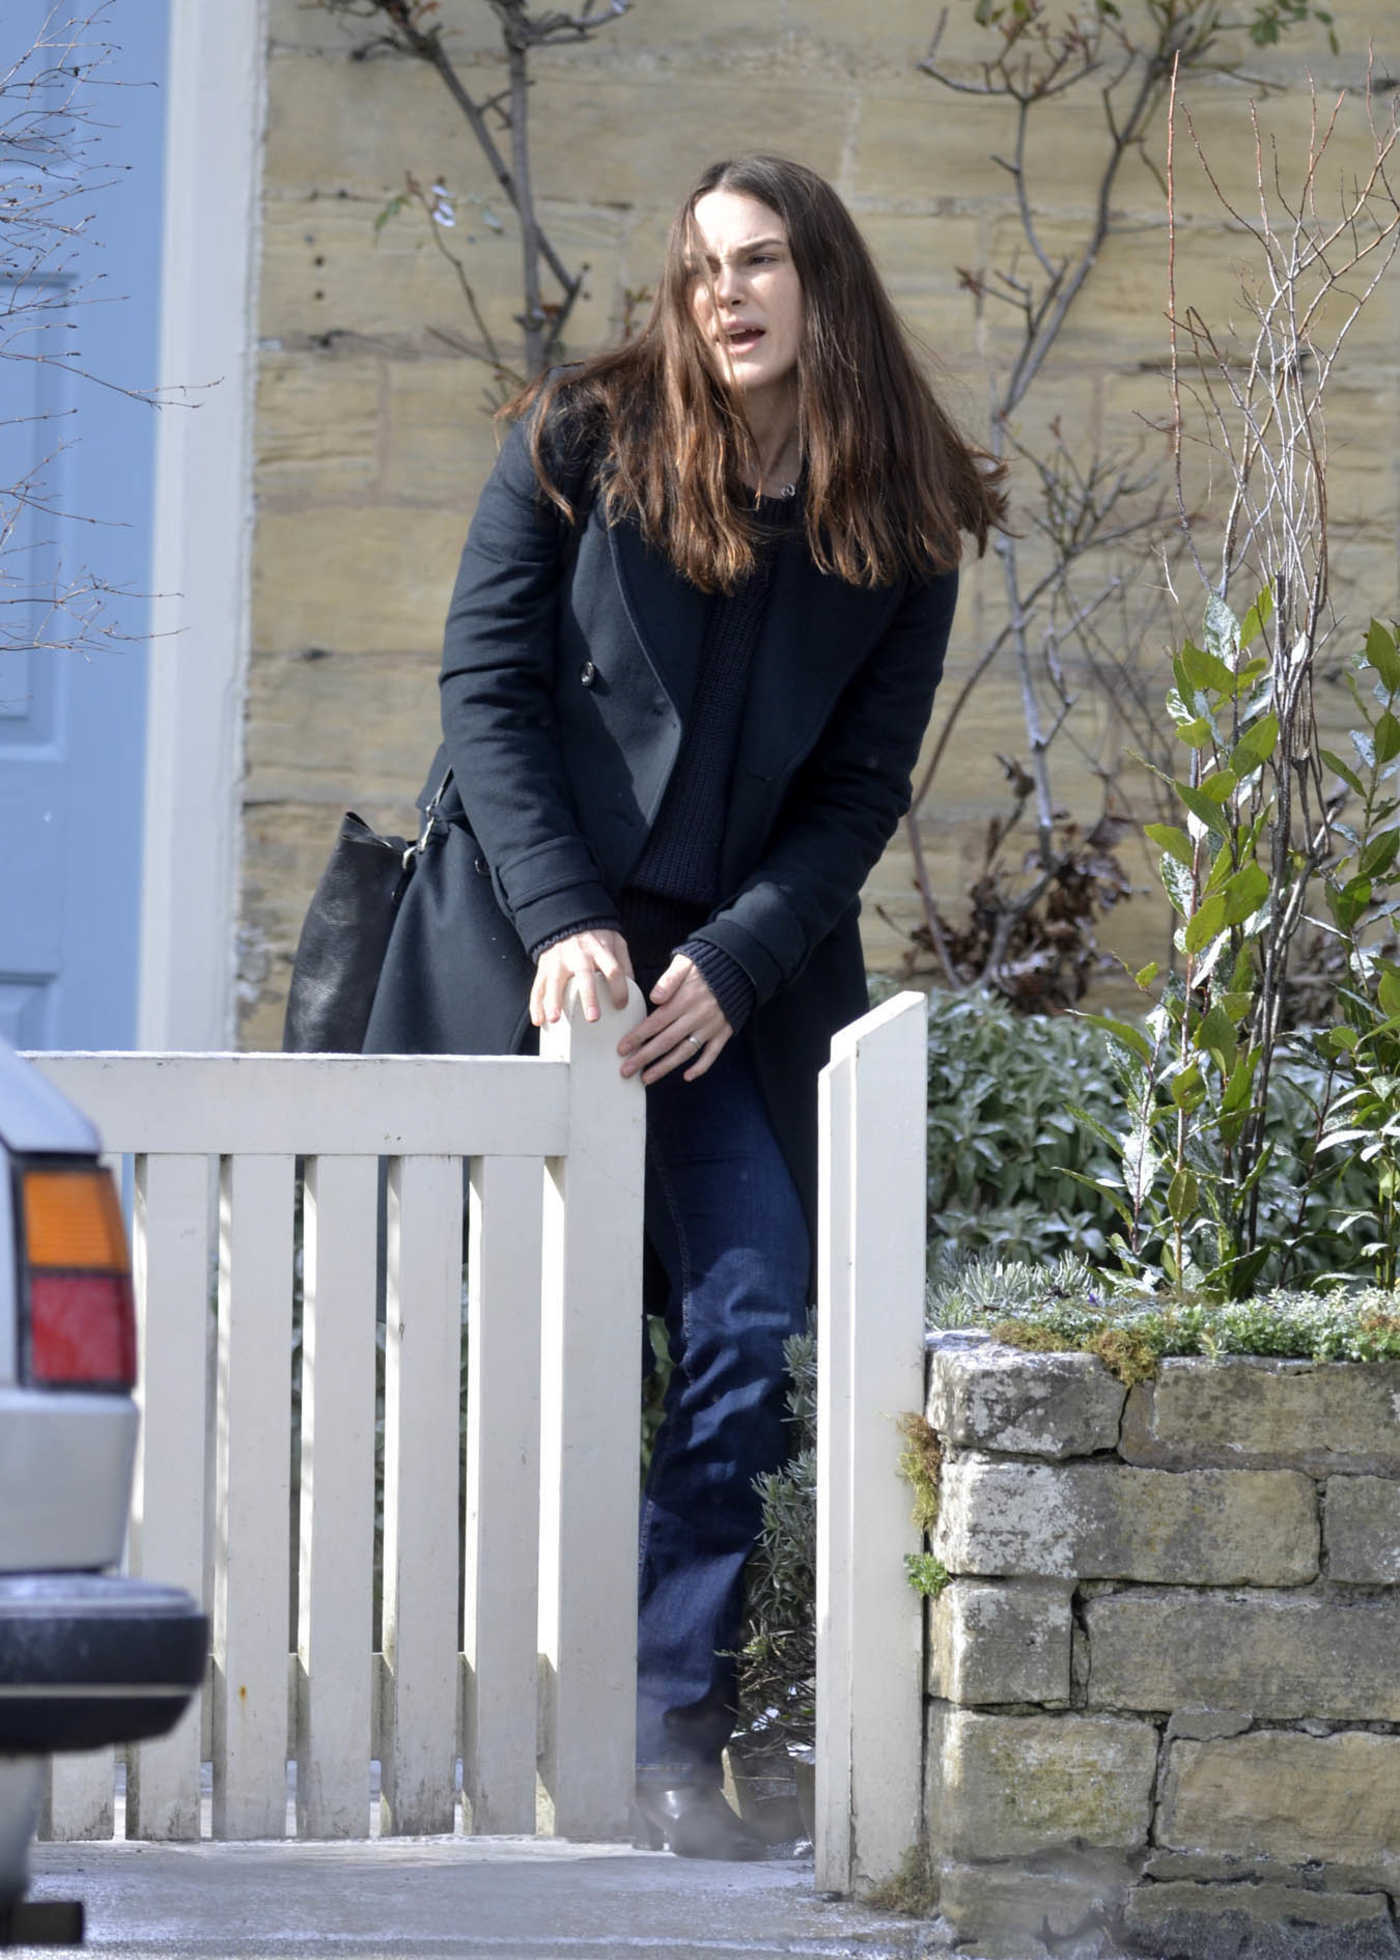 Keira Knightley on the Set of Official Secrets in Wetherby, West Yorkshire 03/18/2018